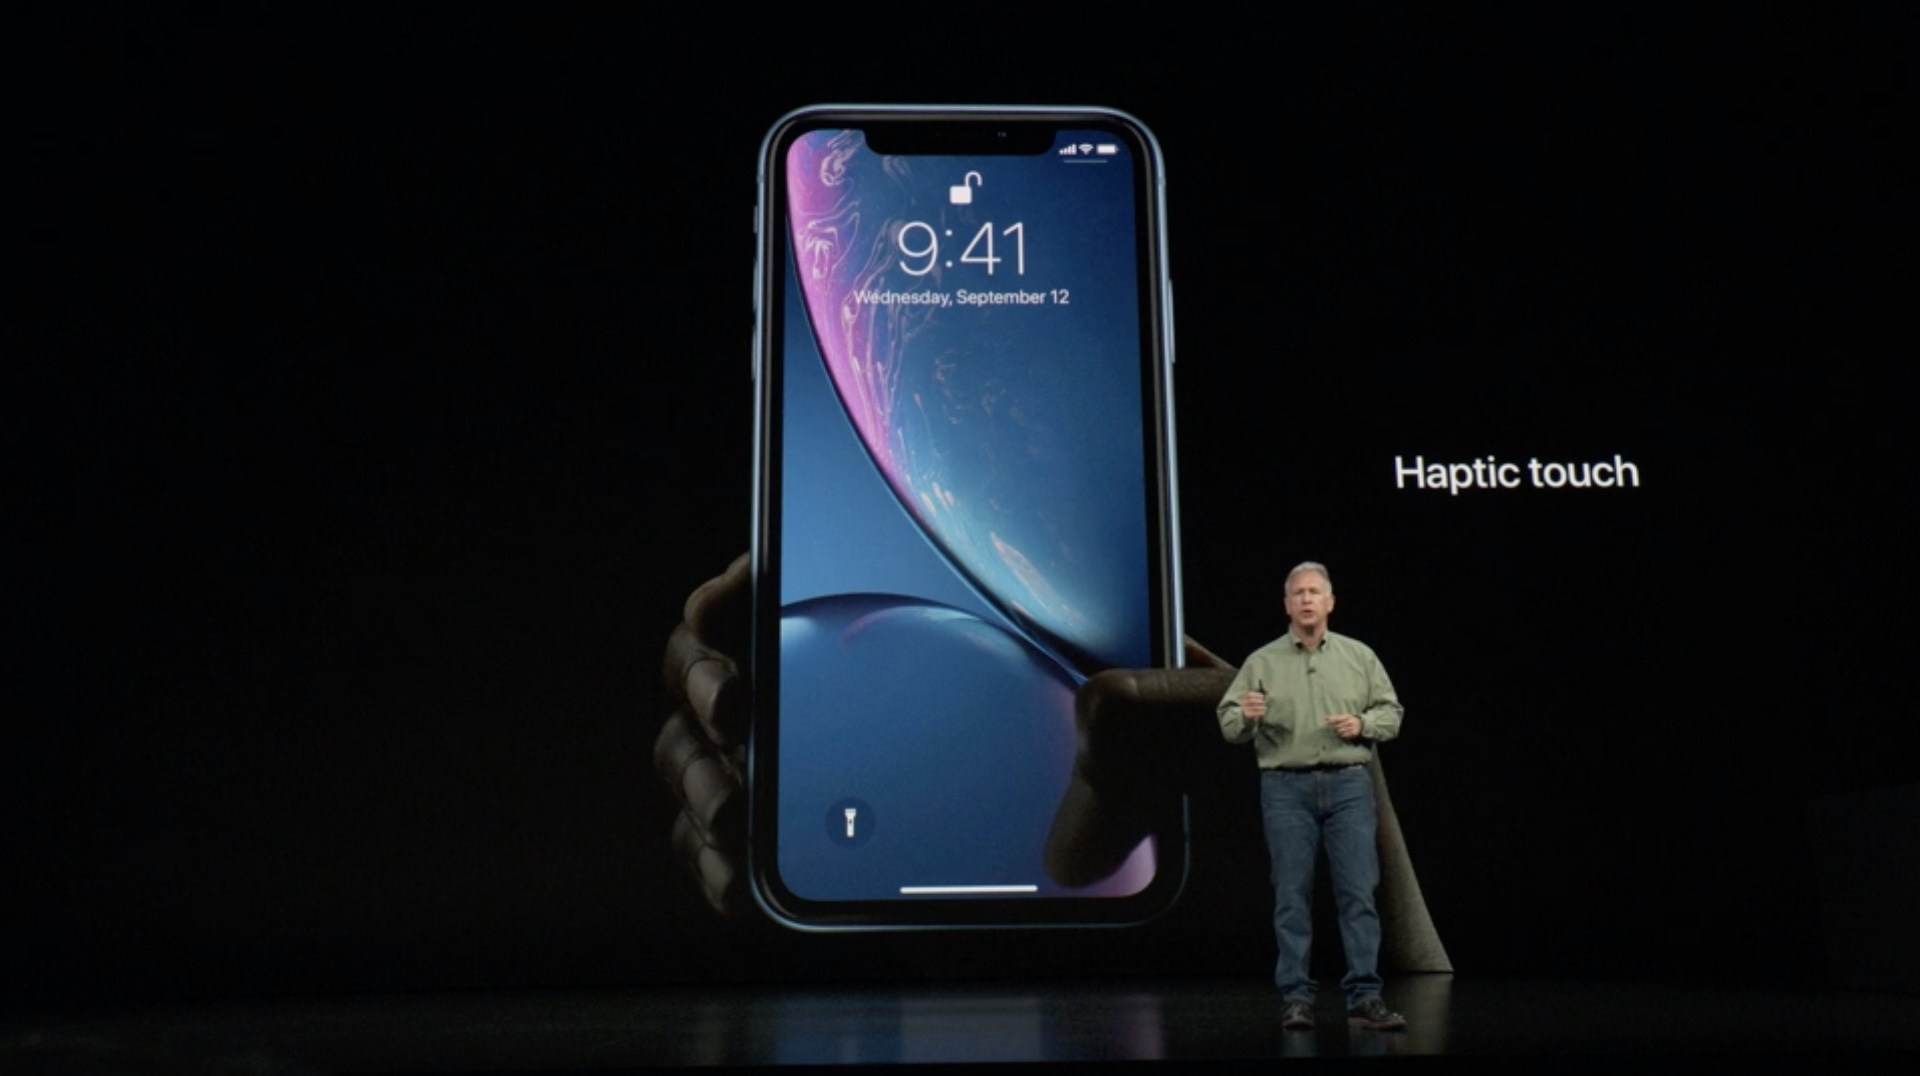 gather-around-apple-event-2018-2465.jpg